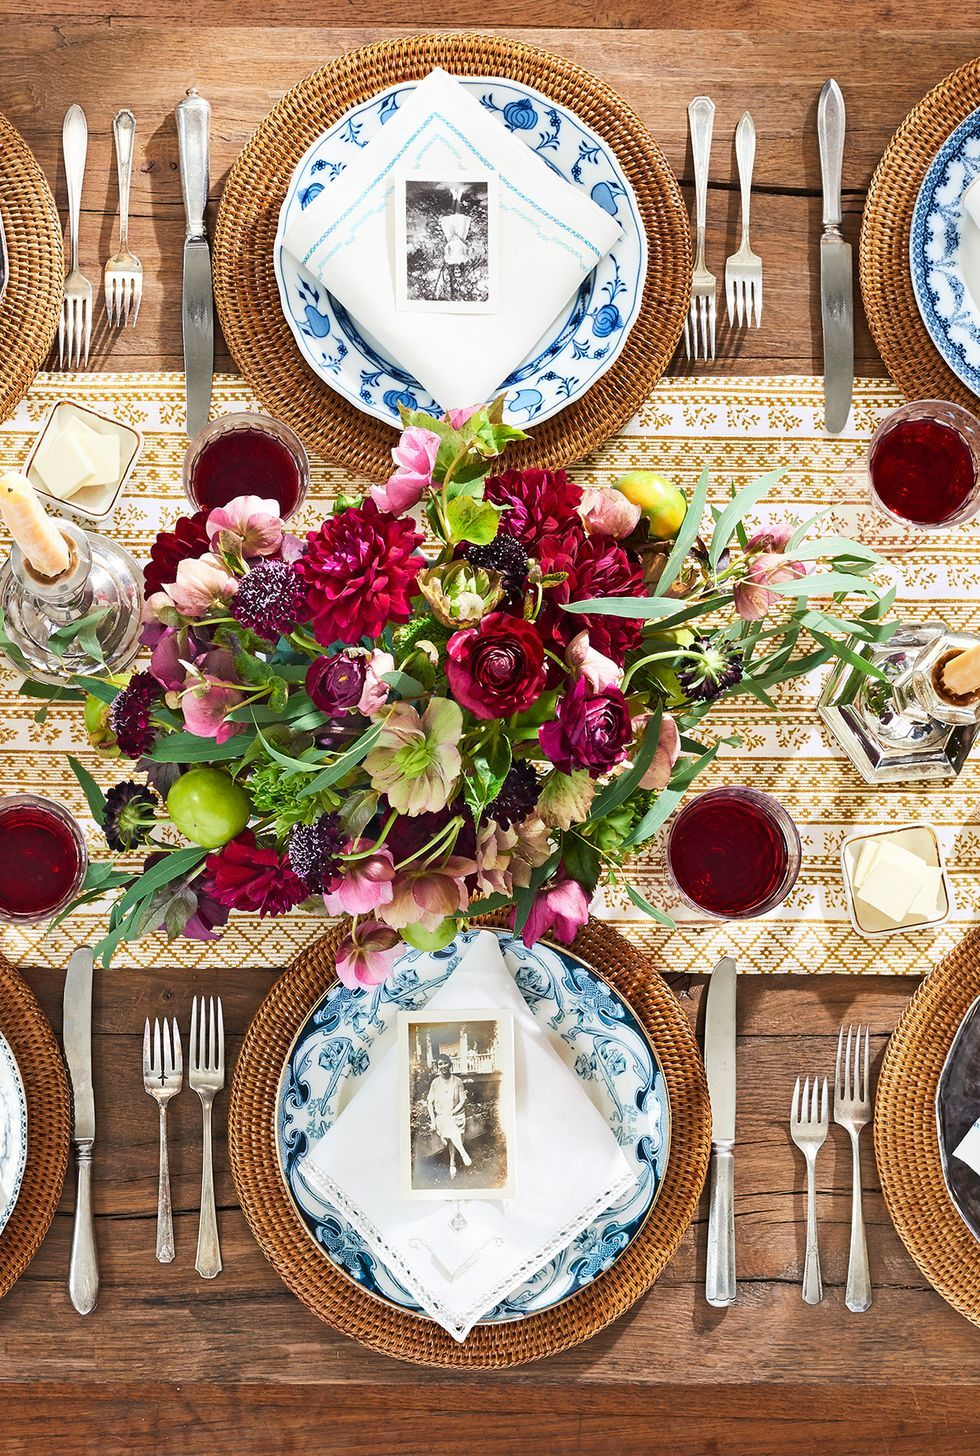 60 Standout Thanksgiving Table Settings to Impress Your Guests